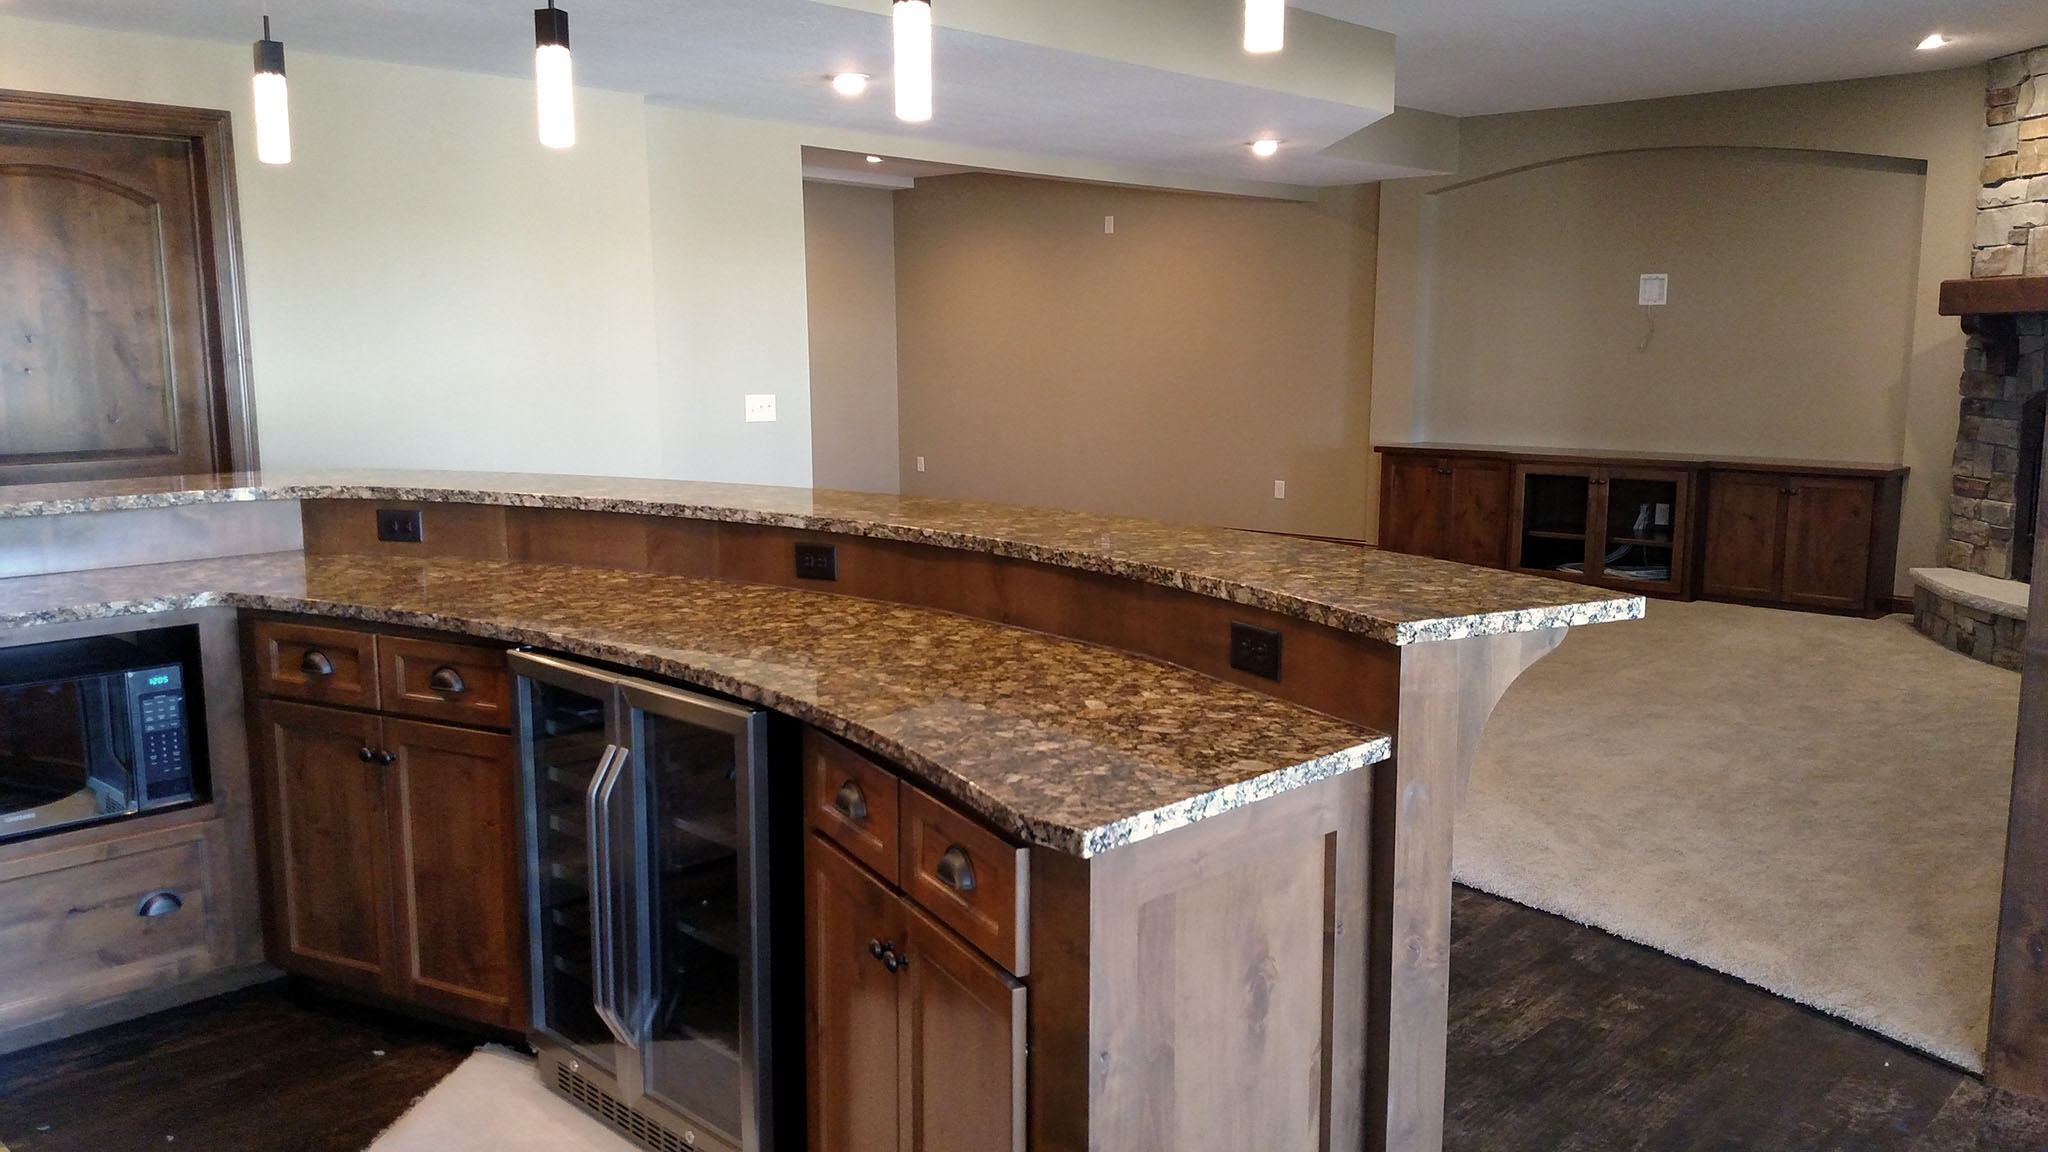 Basement bar area with custom cabinets, curved two-level granite countertops and spacious family room in background